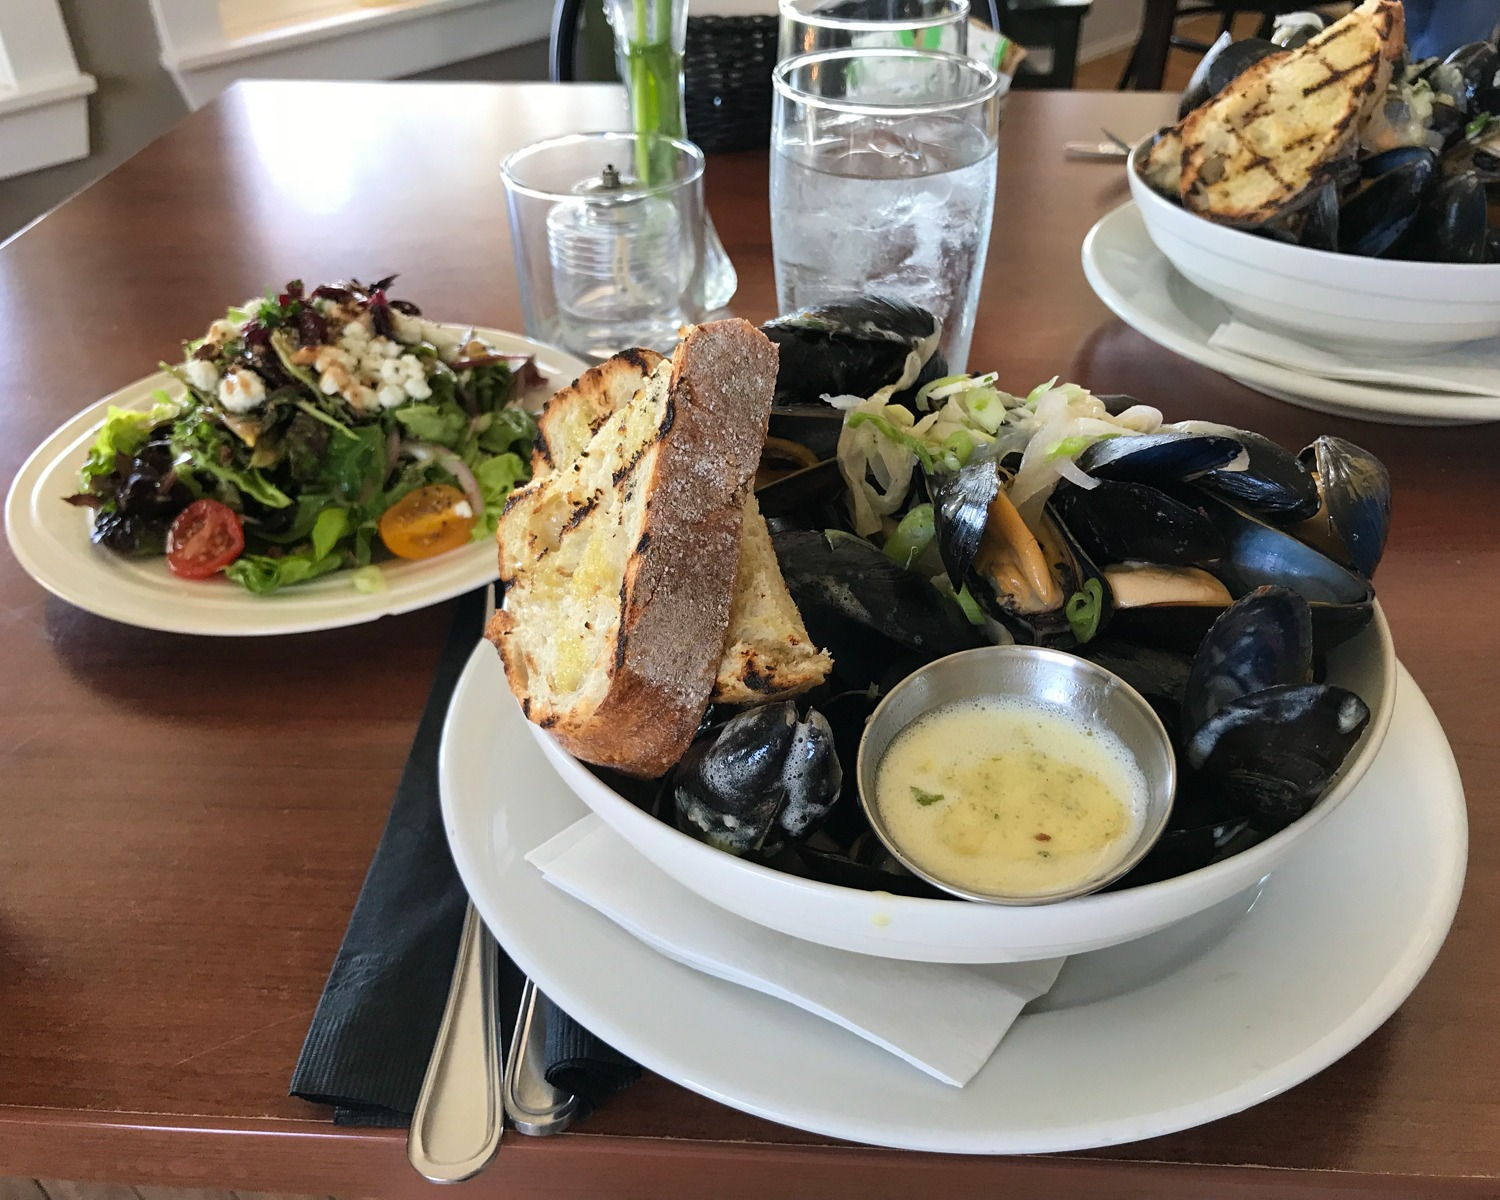 PEI Food - Mussels at 21 Breakwater Photo Heatheronhertravels.com